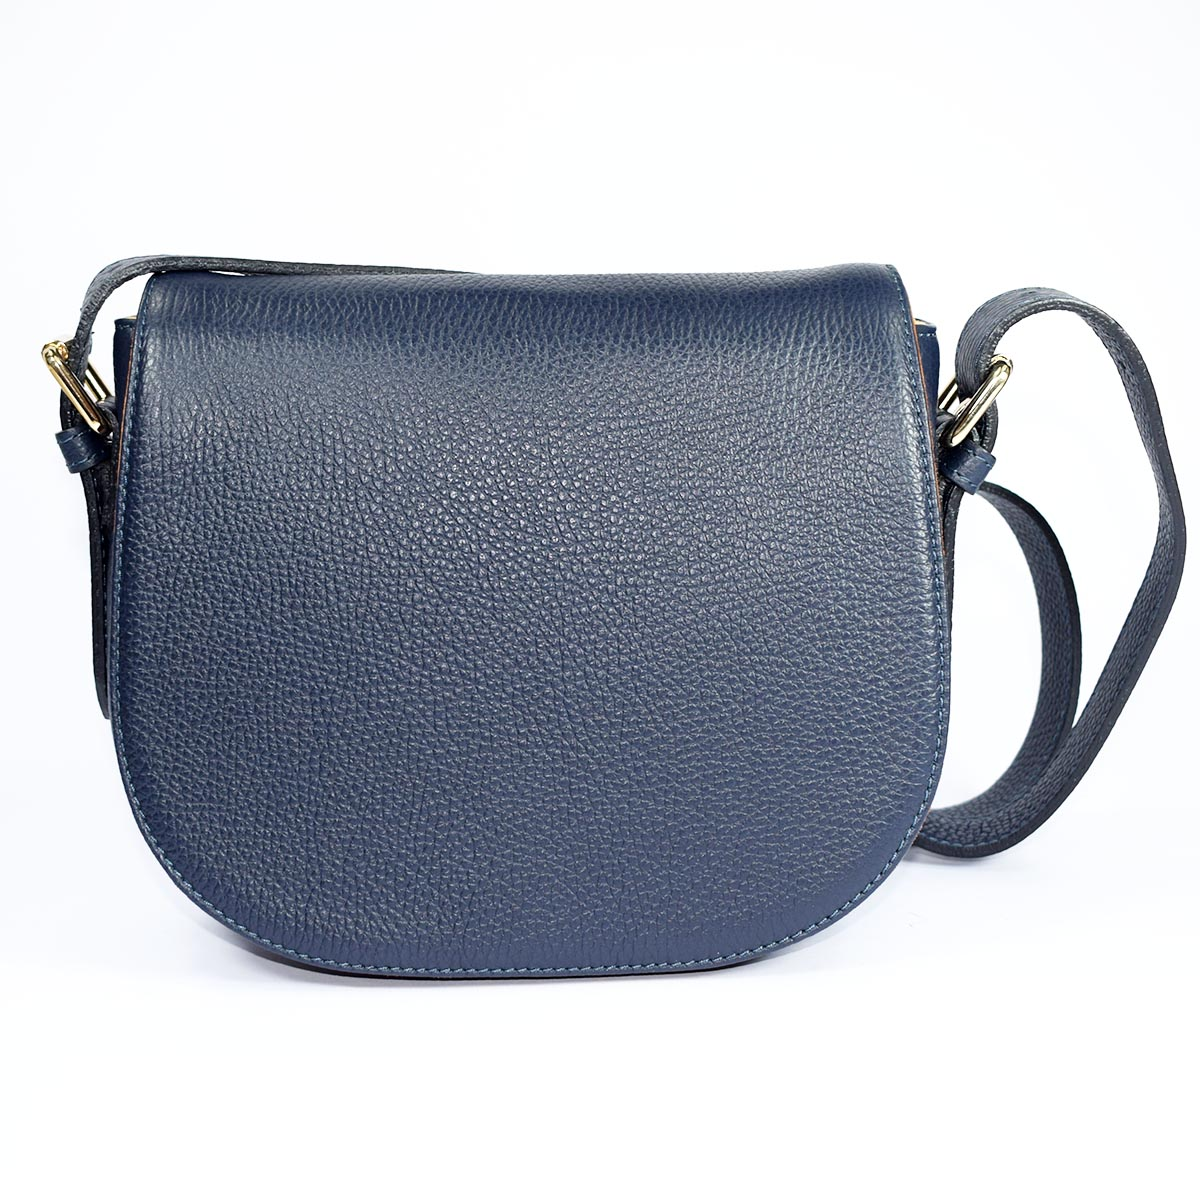 12727 BAG WITH FLAP rounded by Bottega Fiorentina